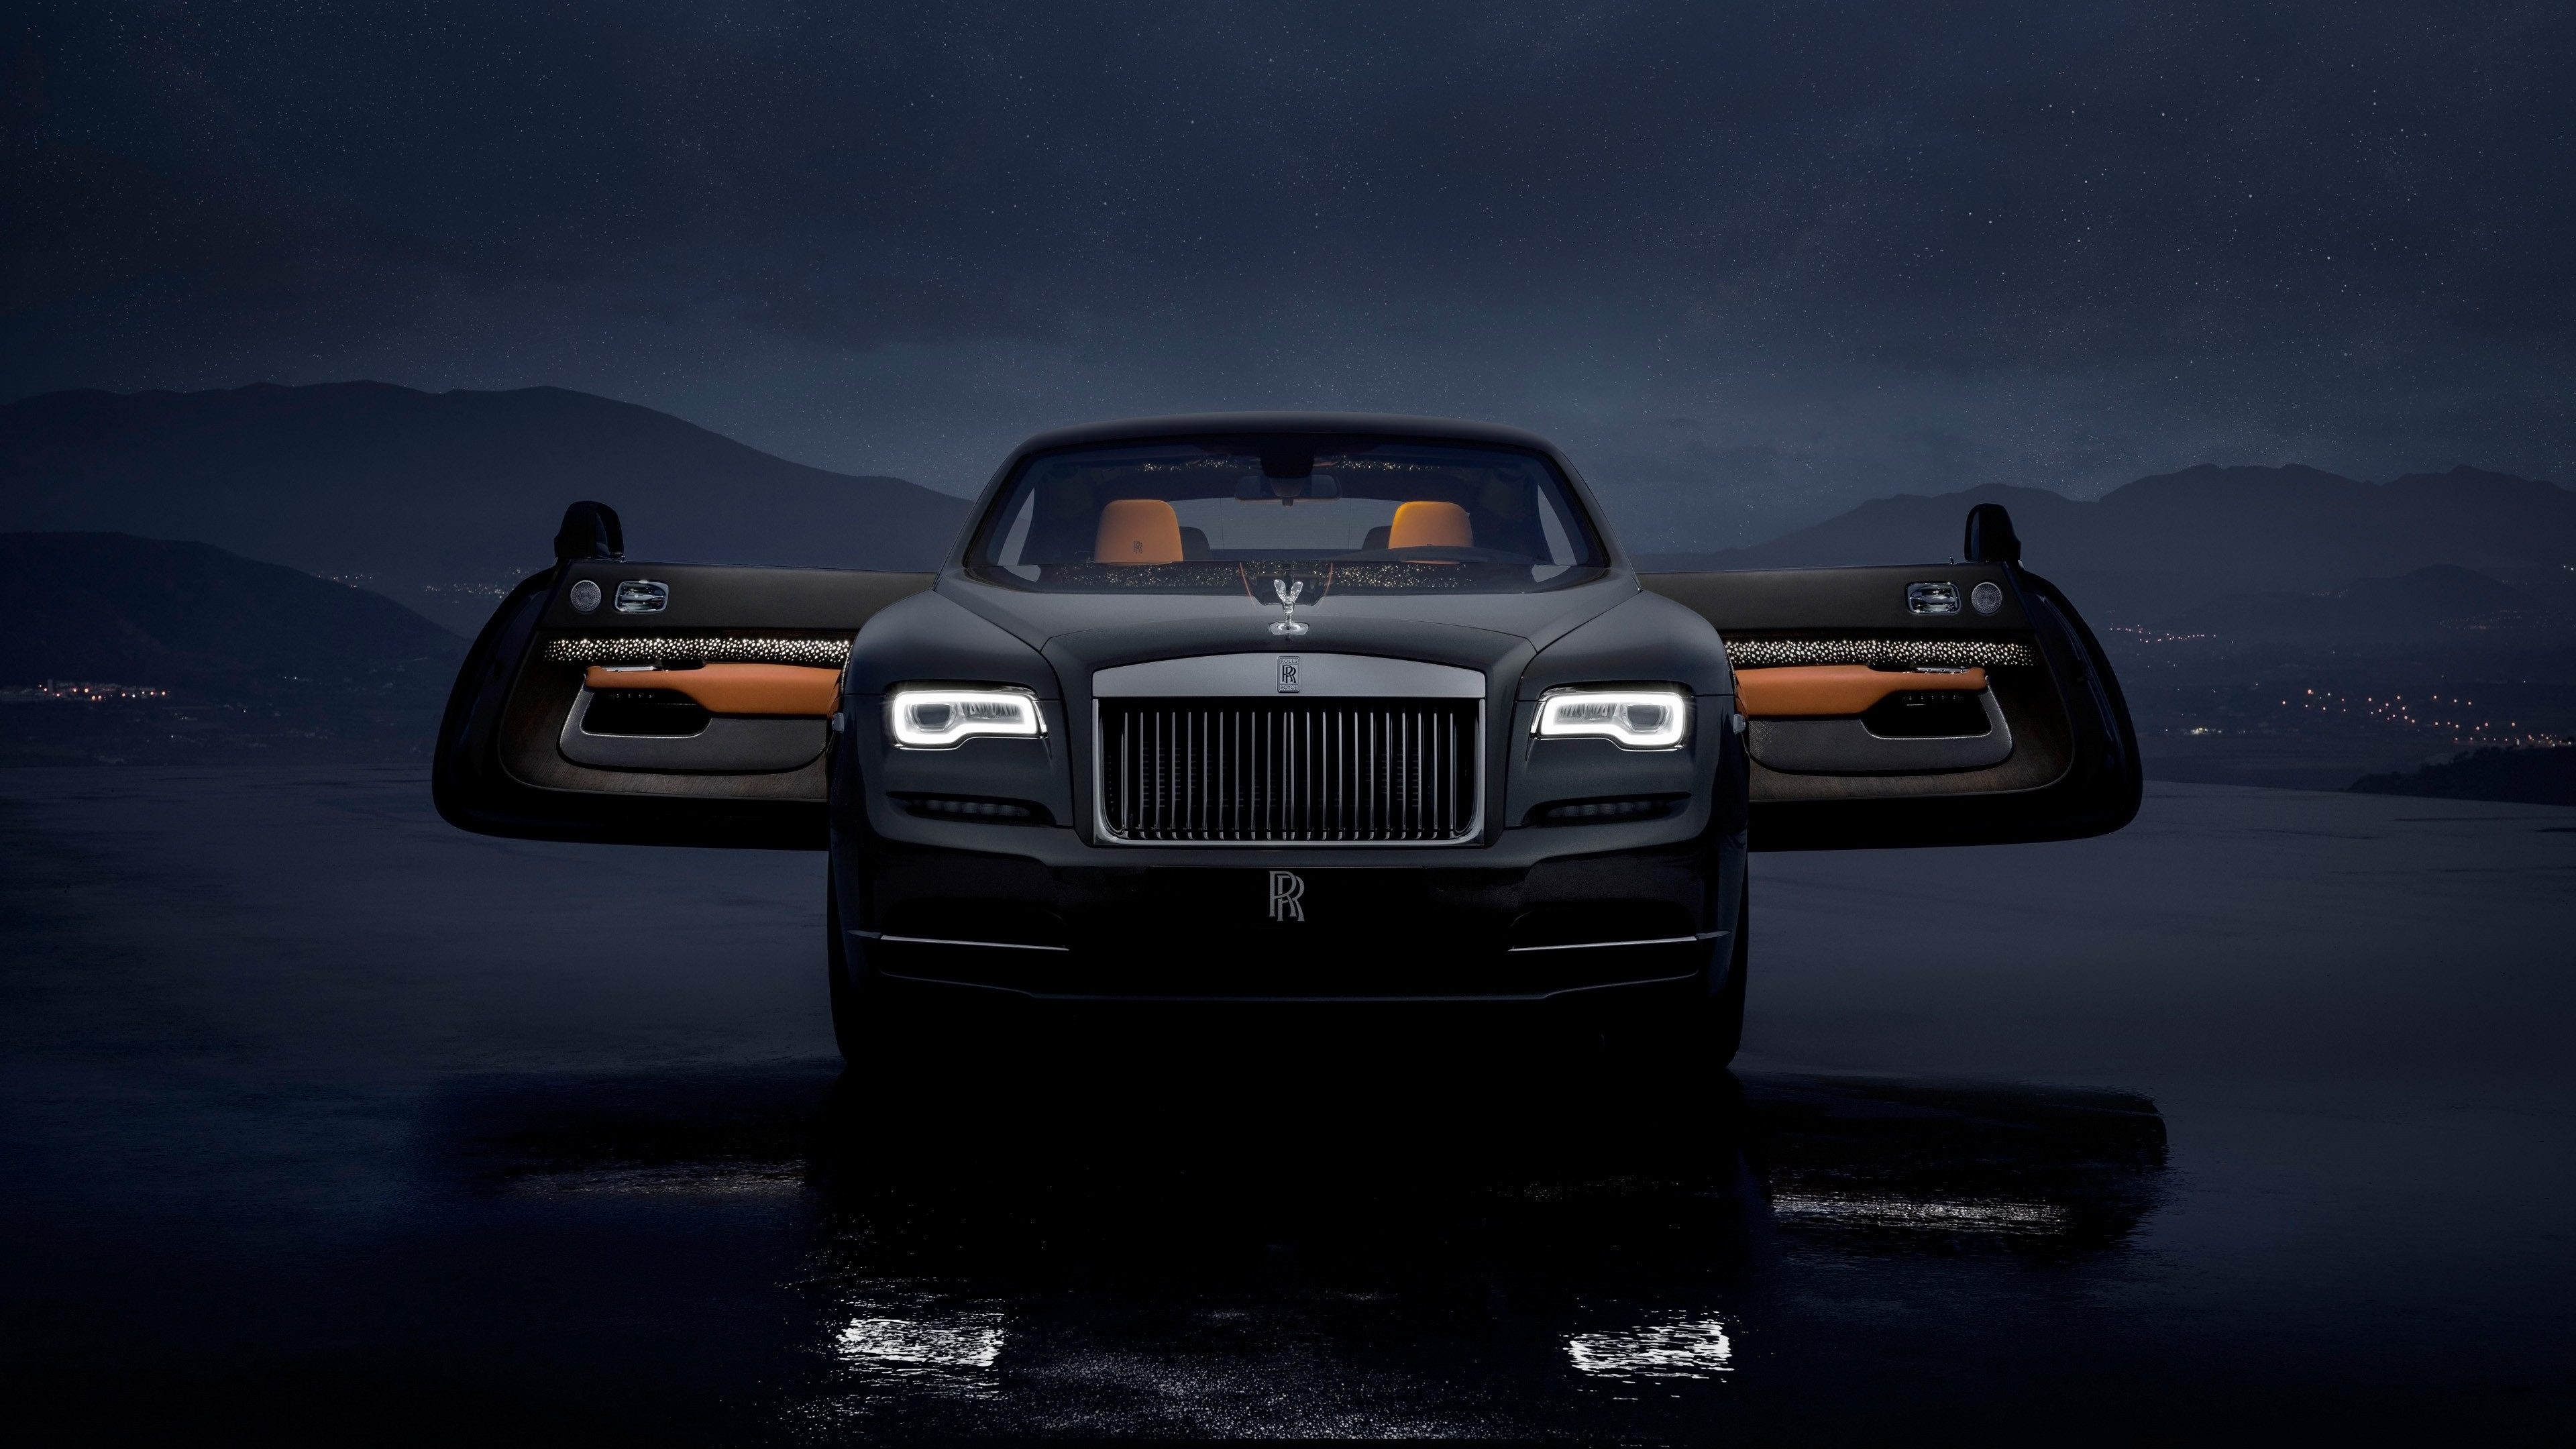 Rolls Royce Wraith Luminary Collection wallpaper 3840x2160